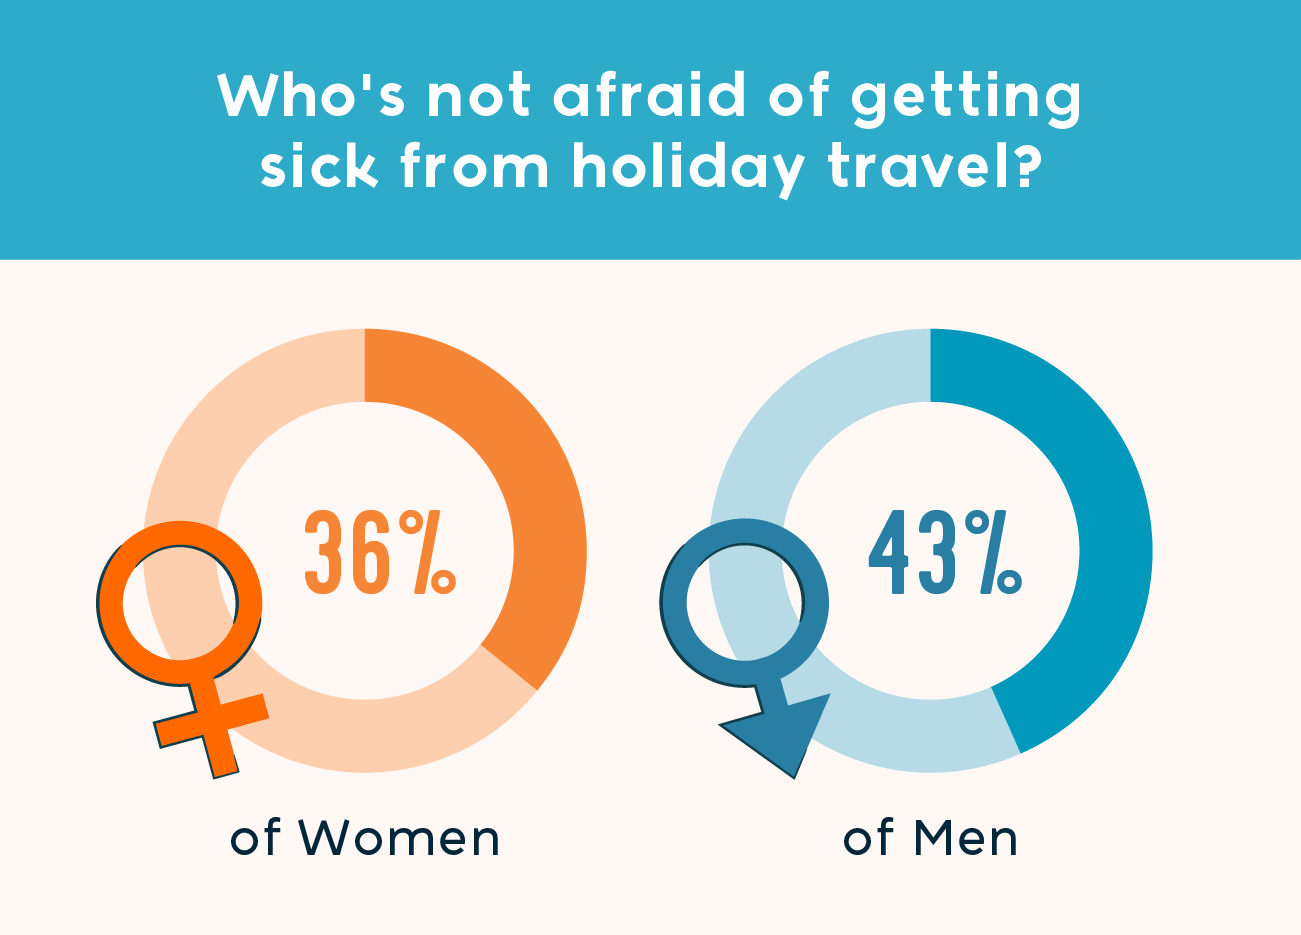 36 percent of women and 43 percent of men are not afraid of getting sick during holiday travel